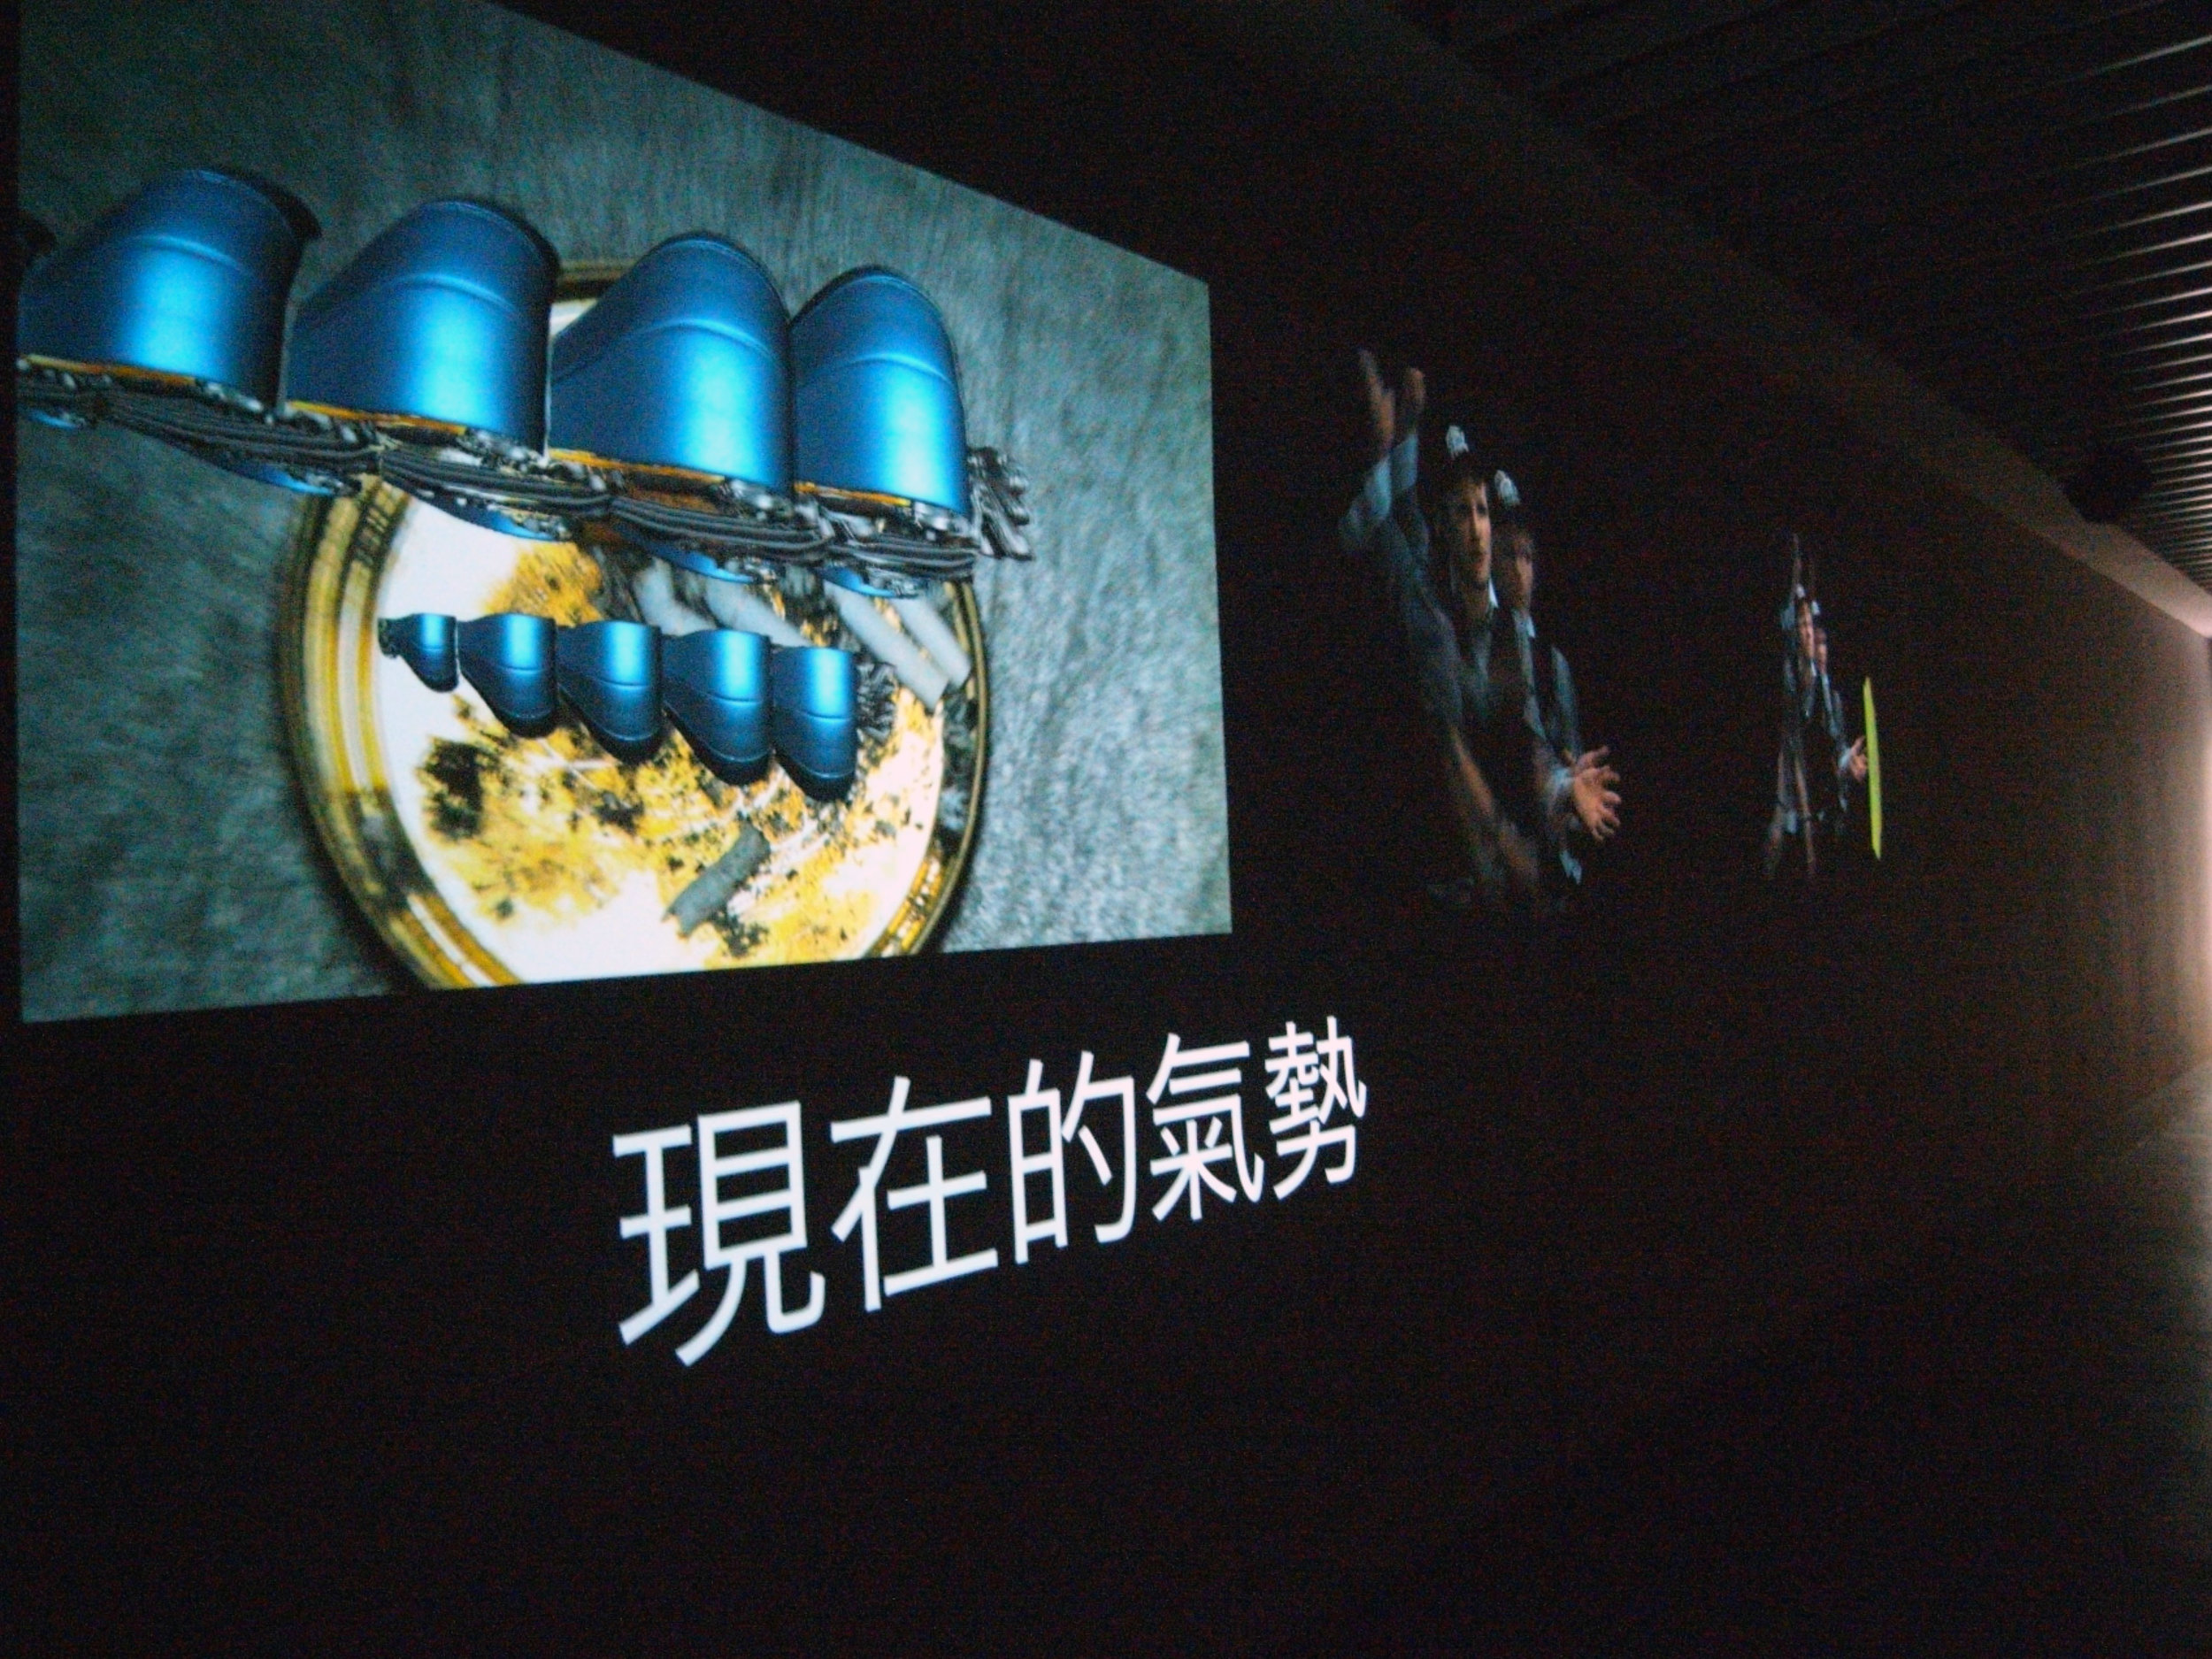 Hilary Koob-Sassen's Faith in Infrastructure, synchronized two-channel HD video, 30 Mins, 2009